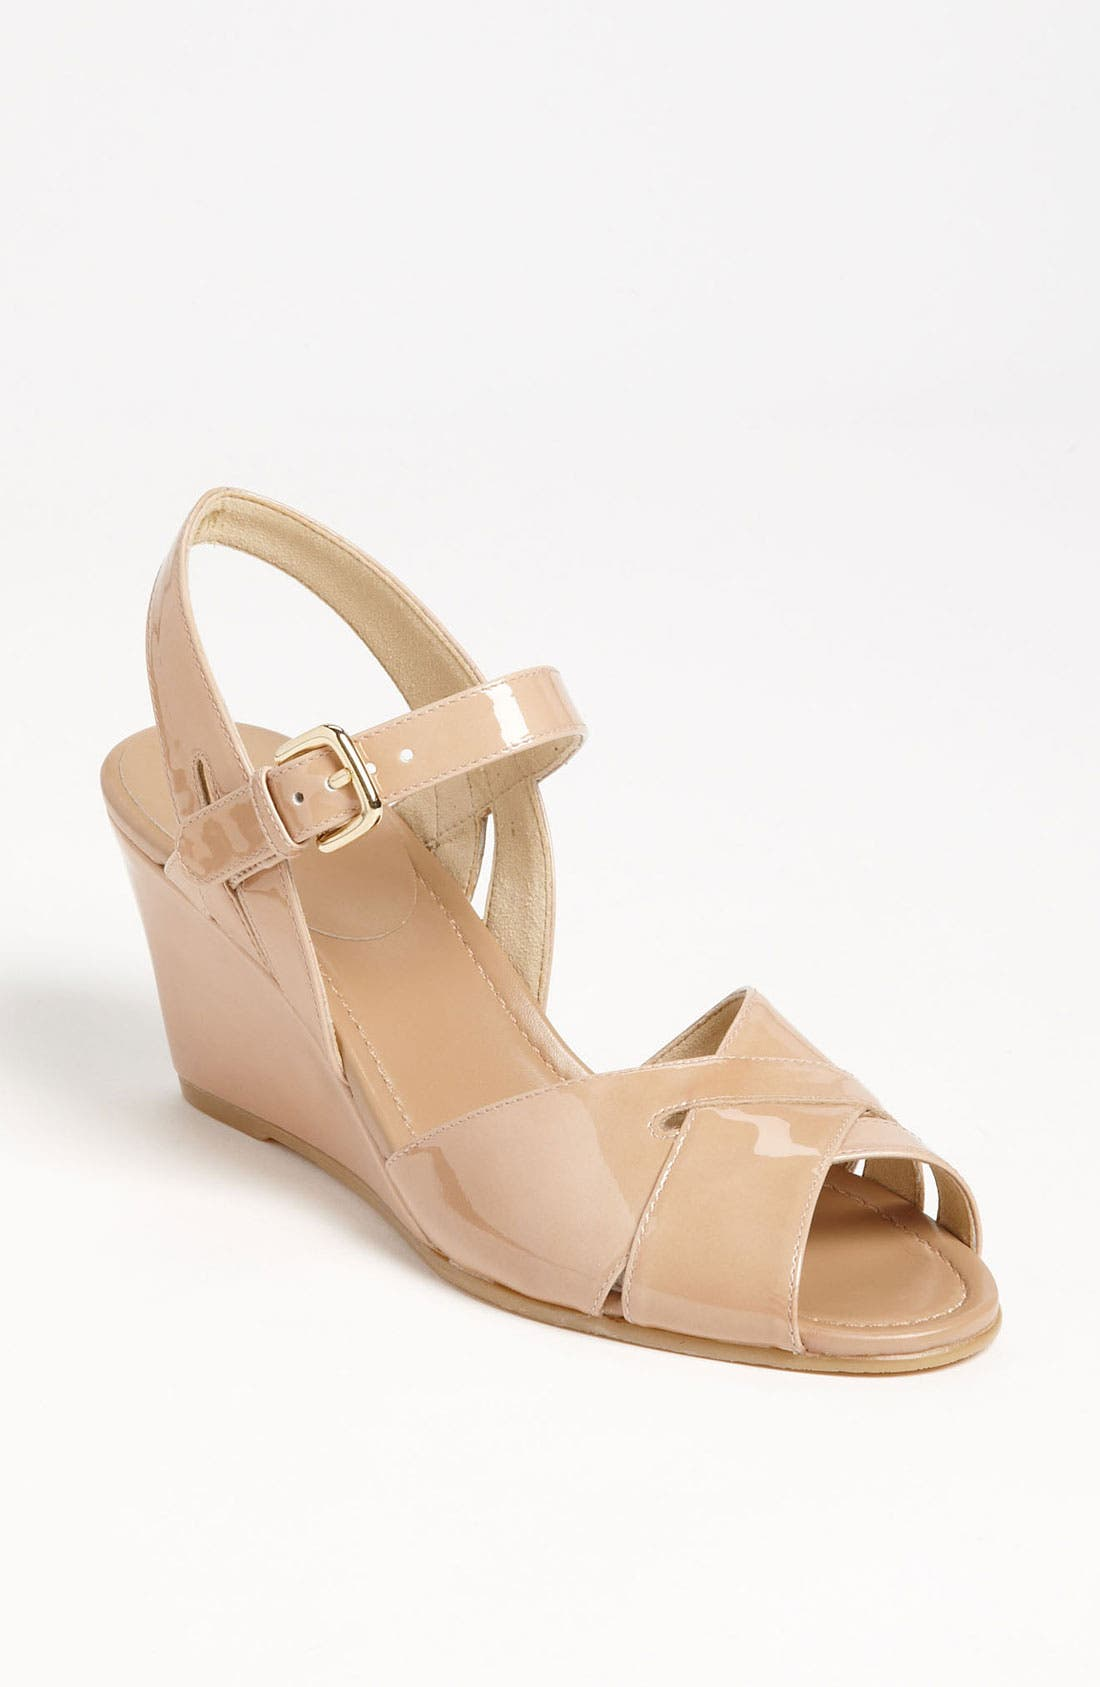 Main Image - Stuart Weitzman 'Halley' Wedge